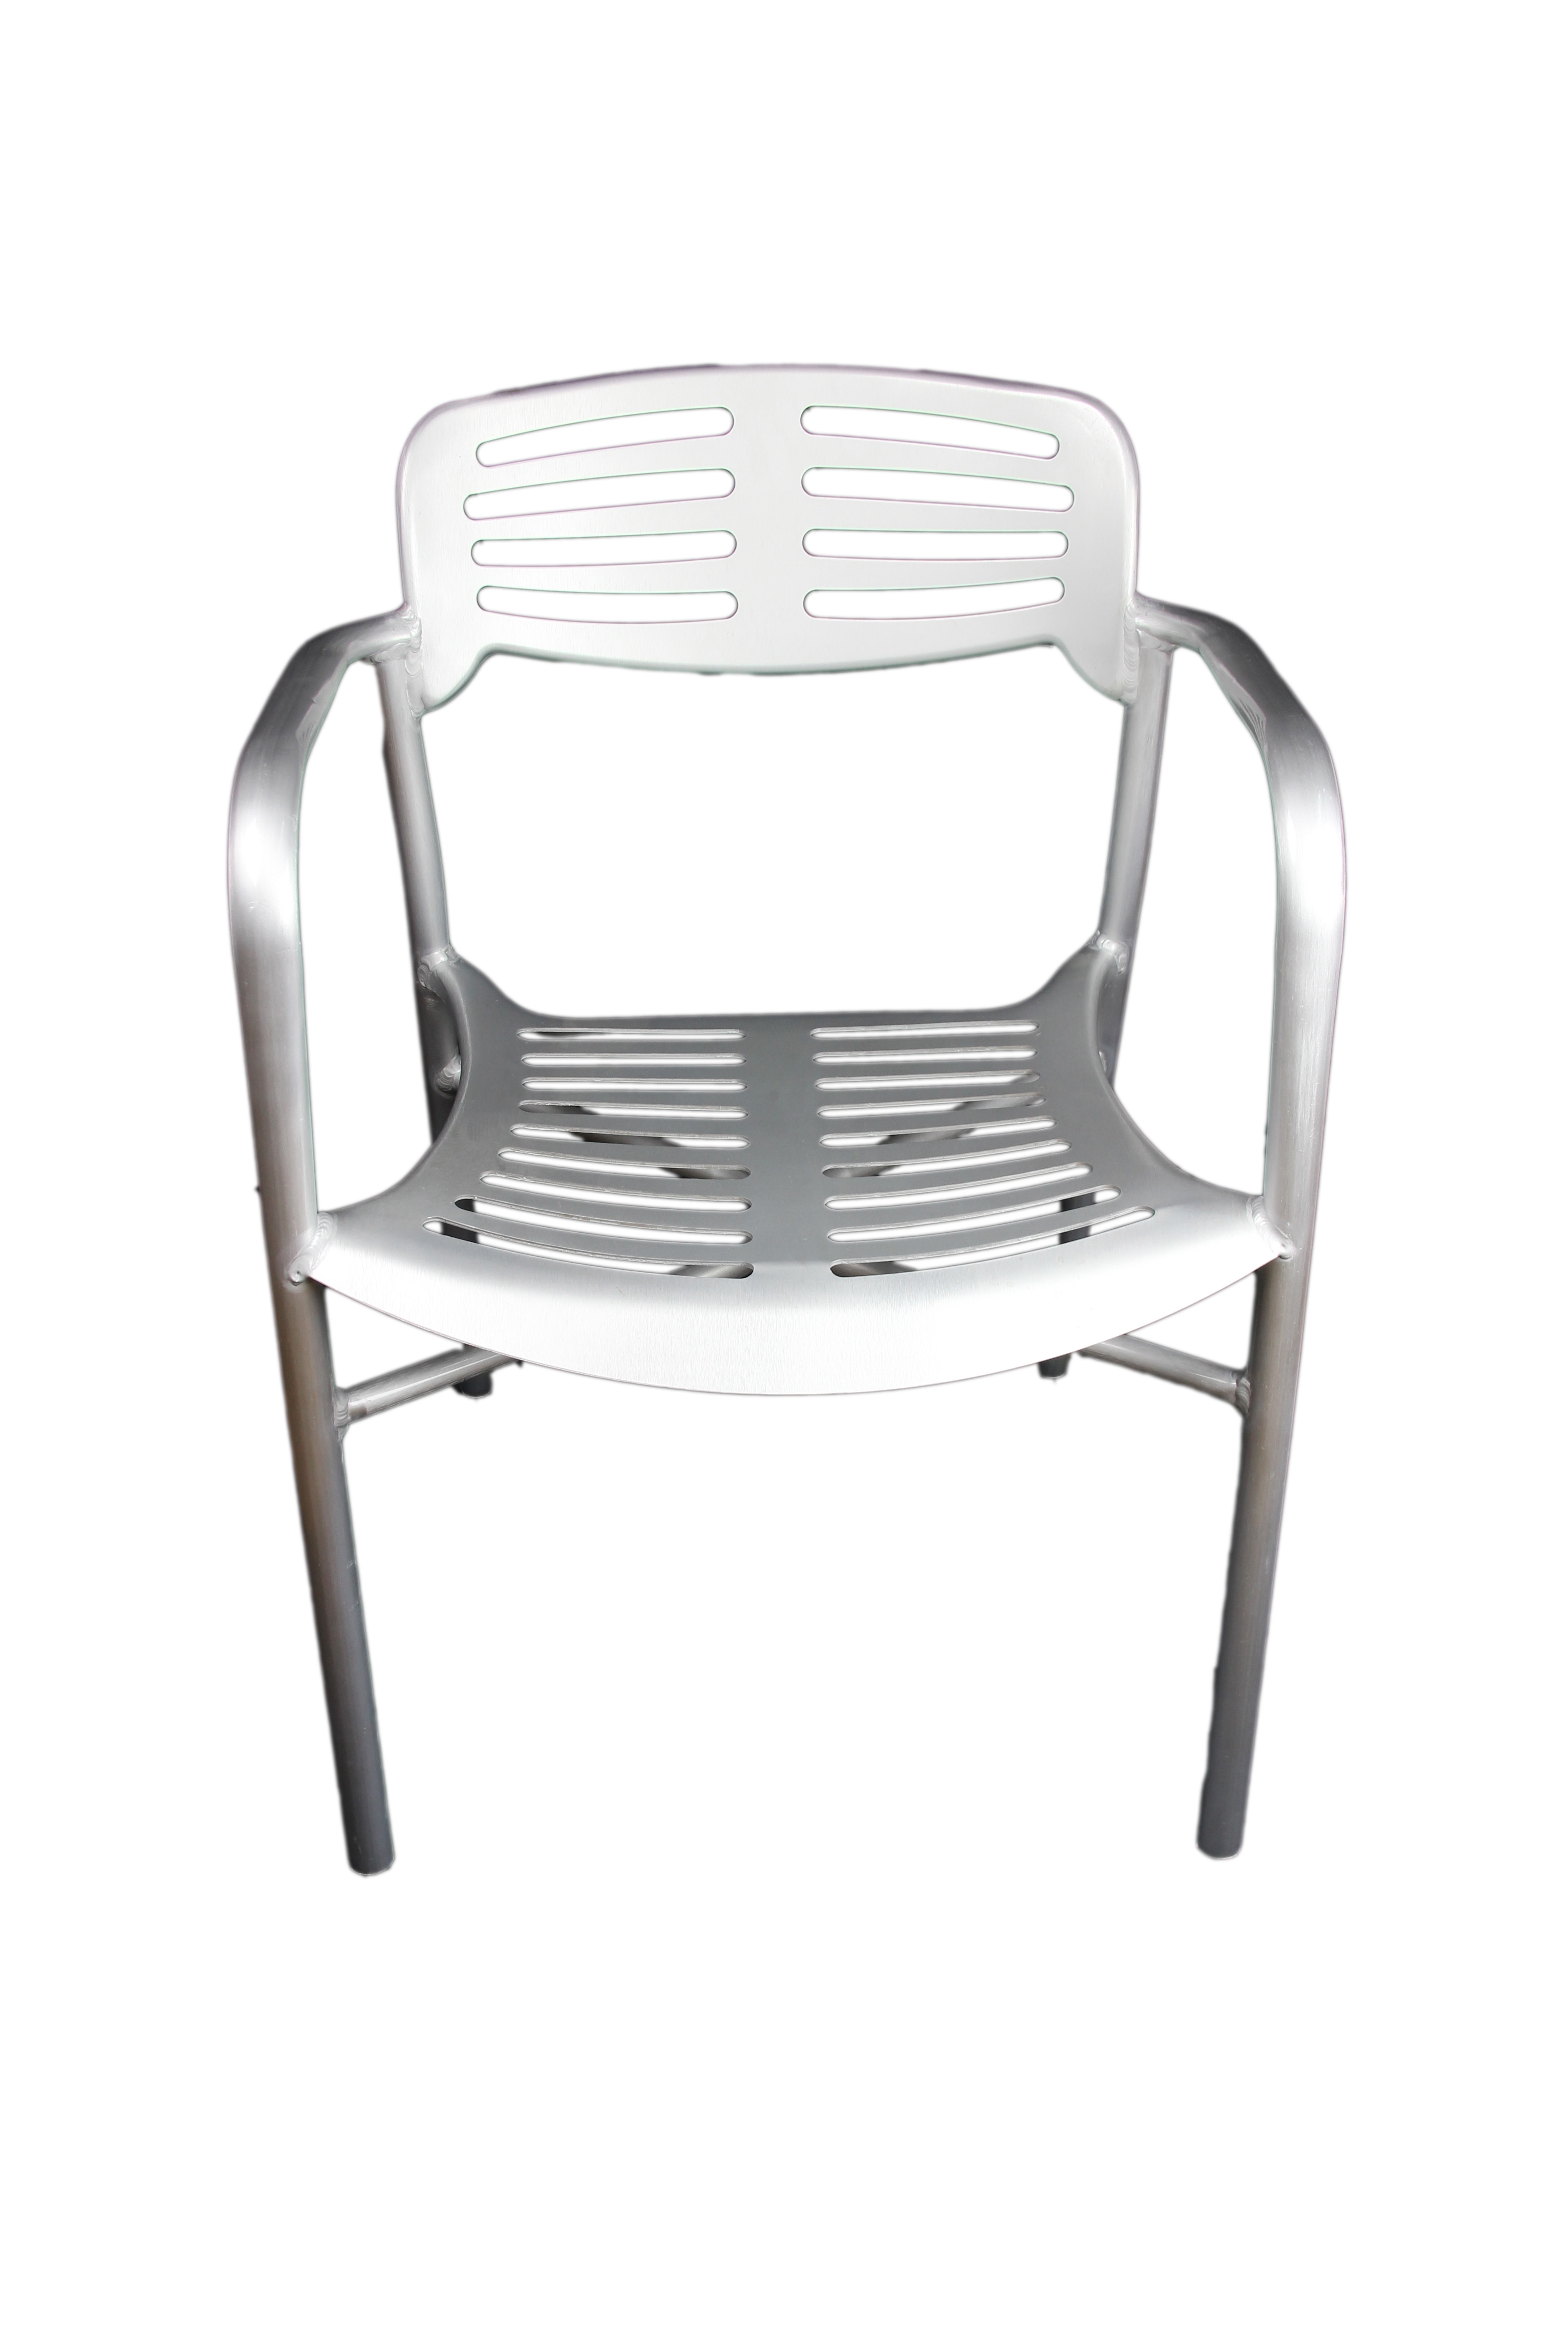 AAA Furniture Wholesale 319BH chair, armchair, outdoor